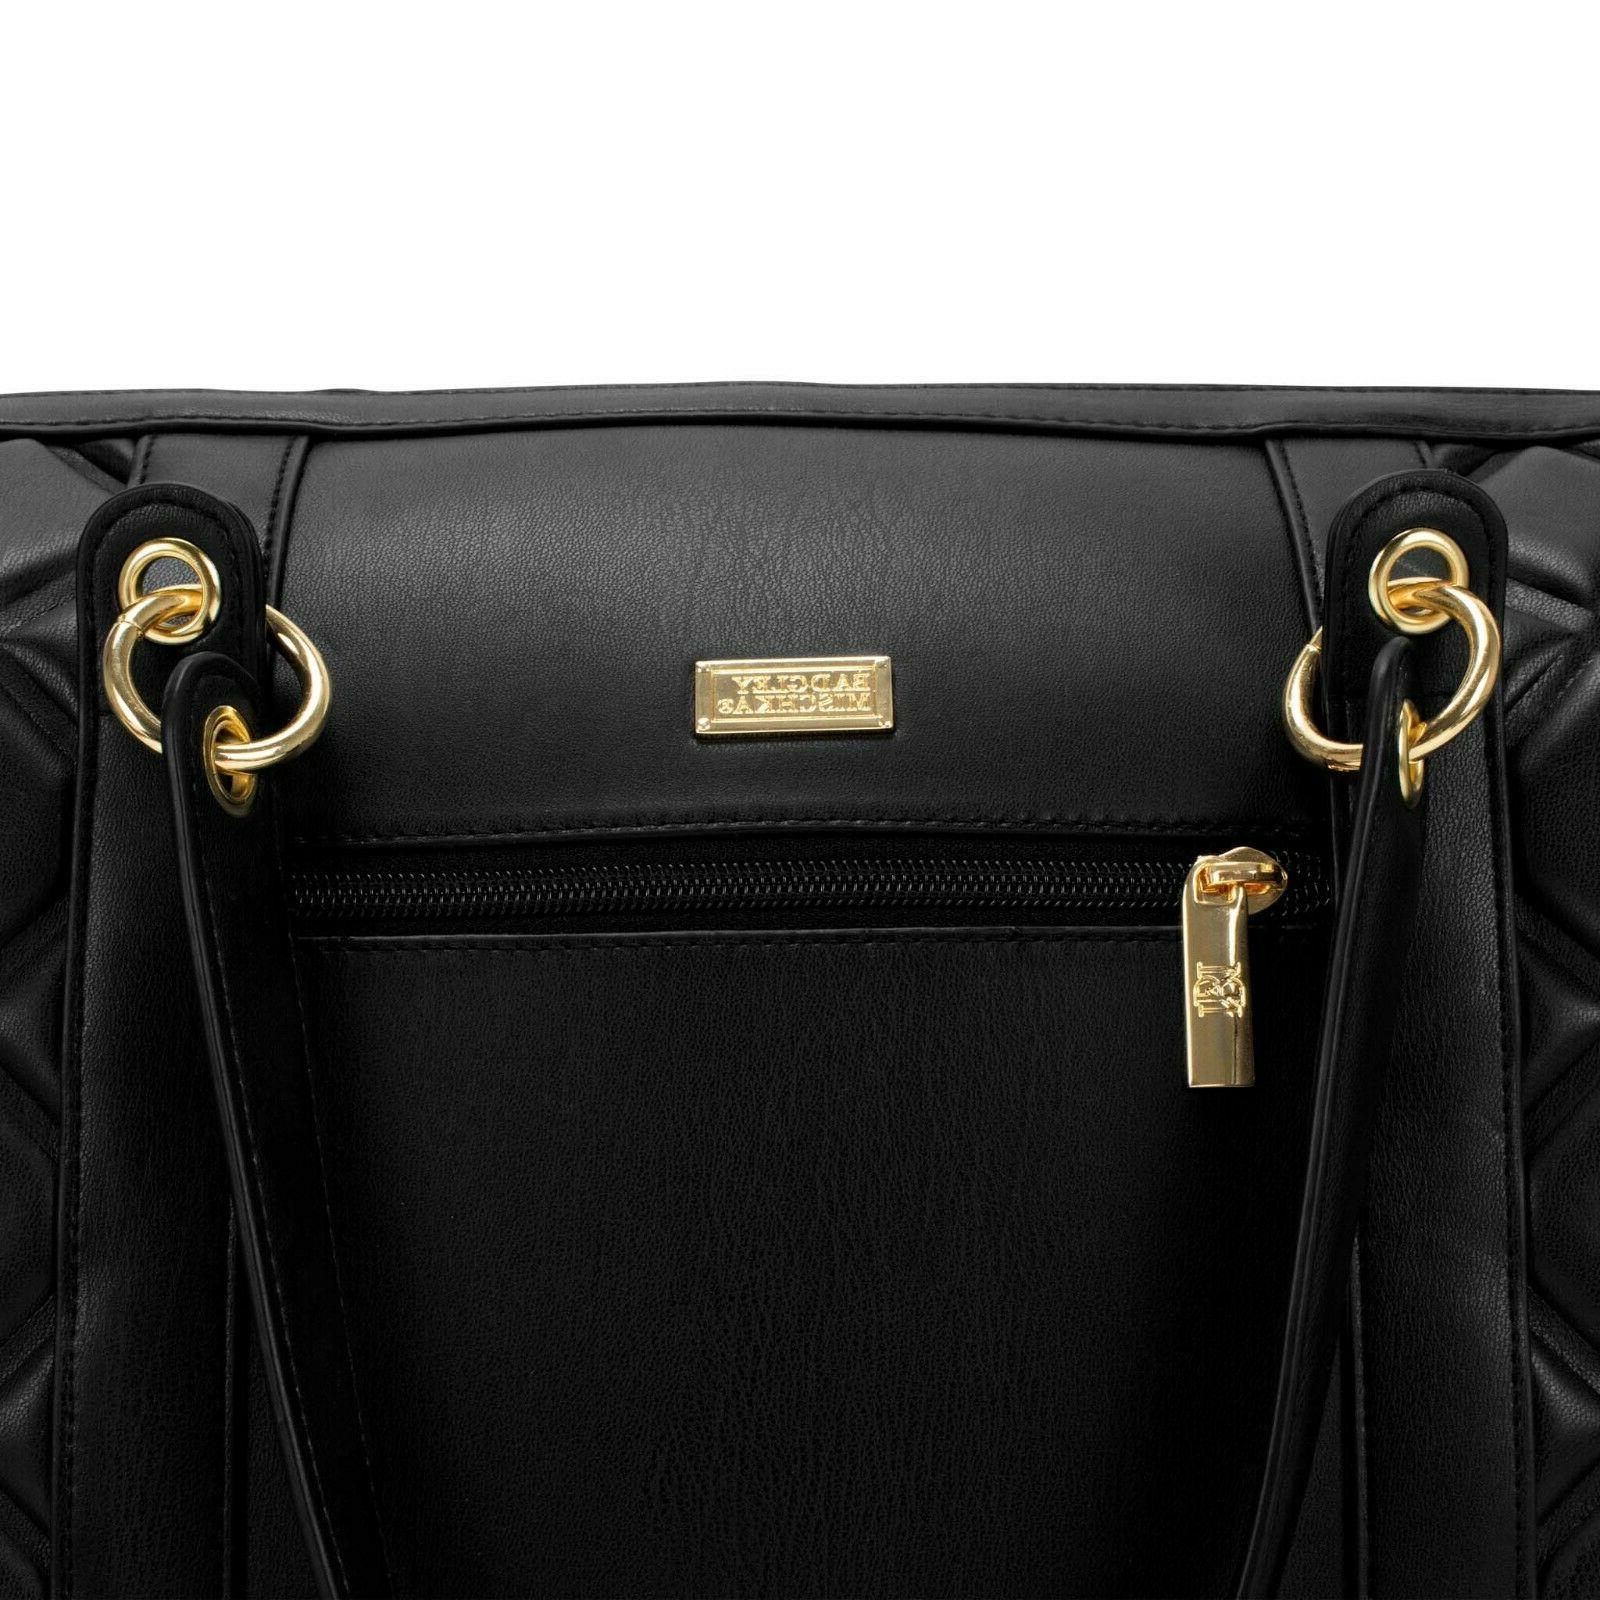 BADGLEY MISCHKA Quilted Tote Packable Travel